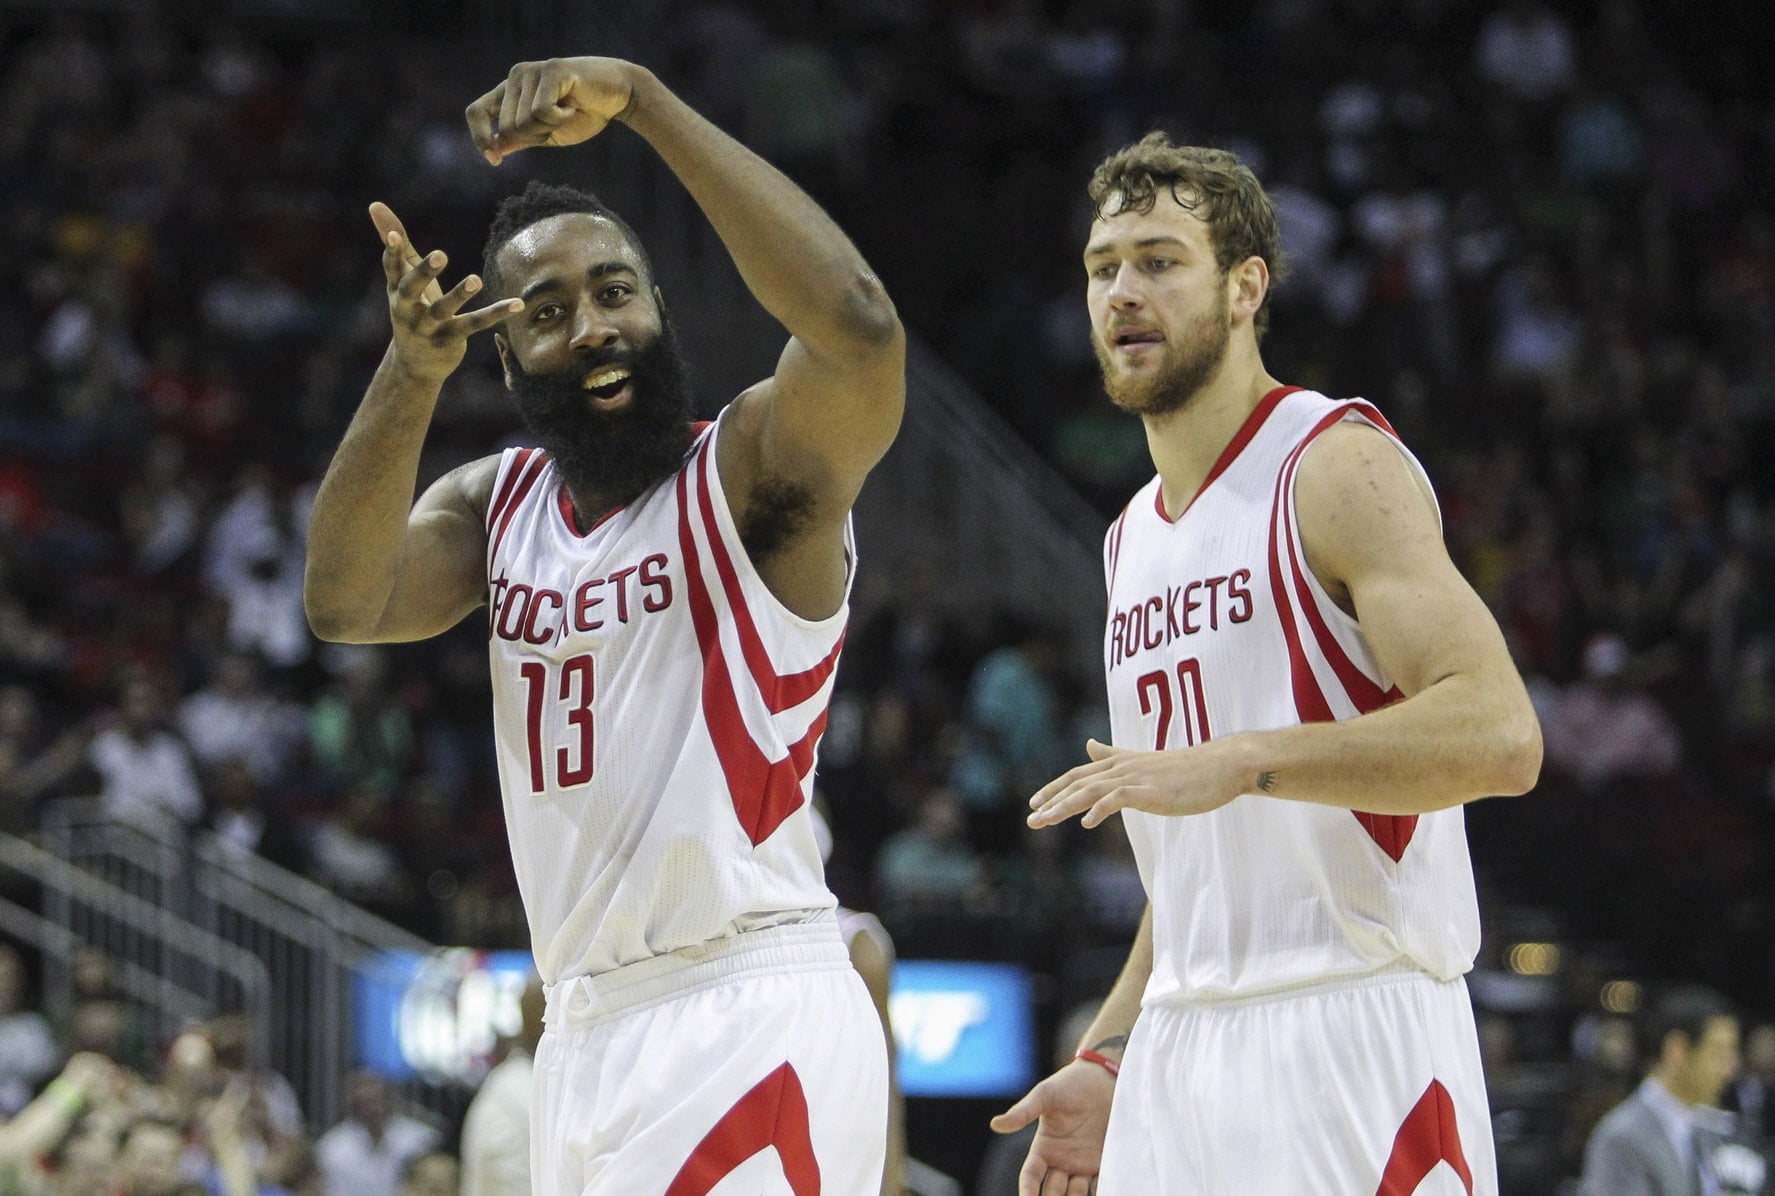 Courtesy of USA Today: Could James Harden have been an option for New Orleans?